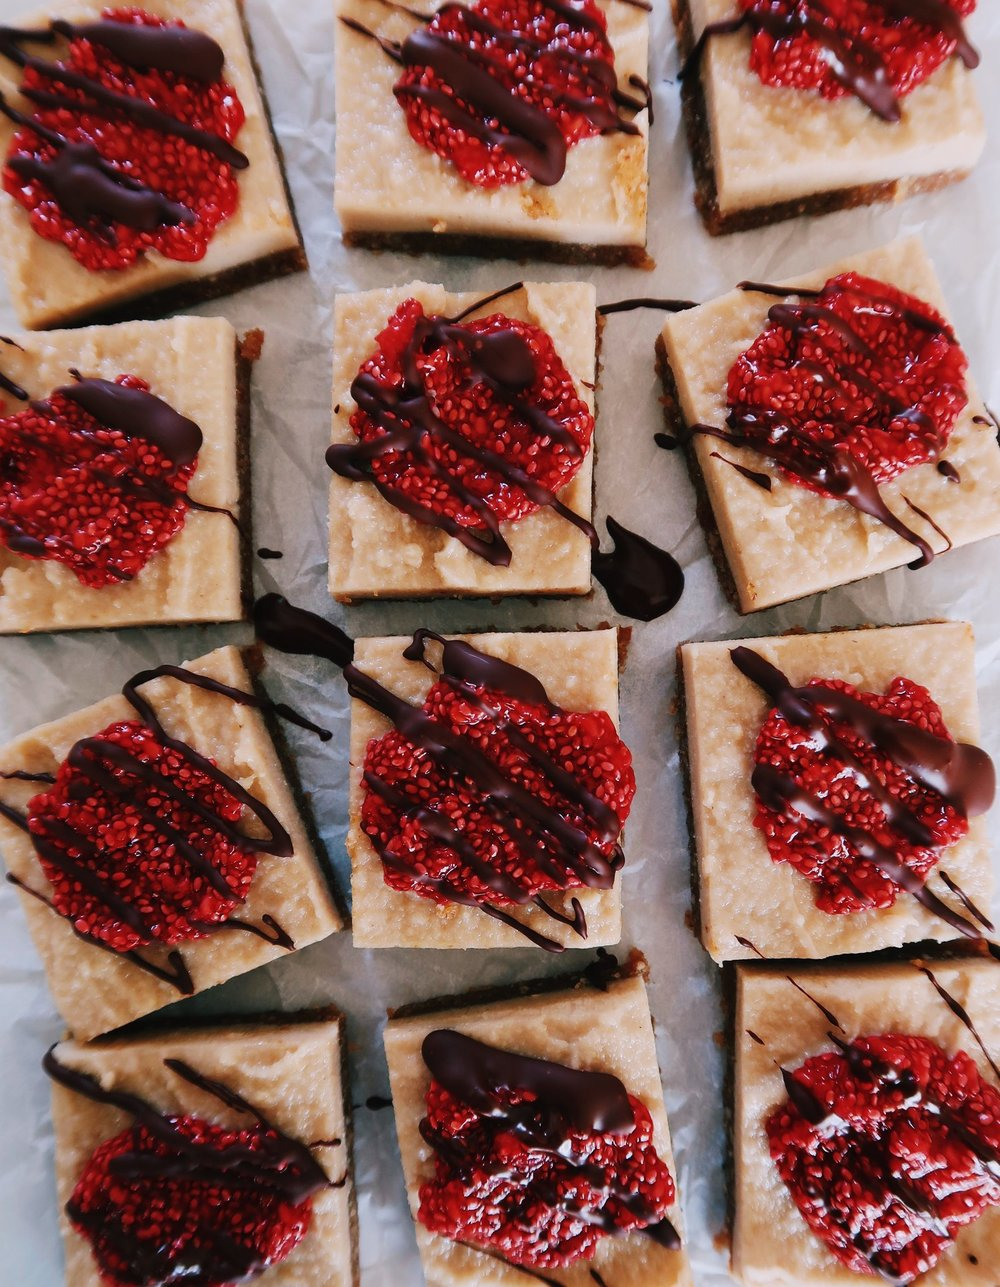 hu-chocolate-paleo-raspberry-cheesecake-bars.jpg